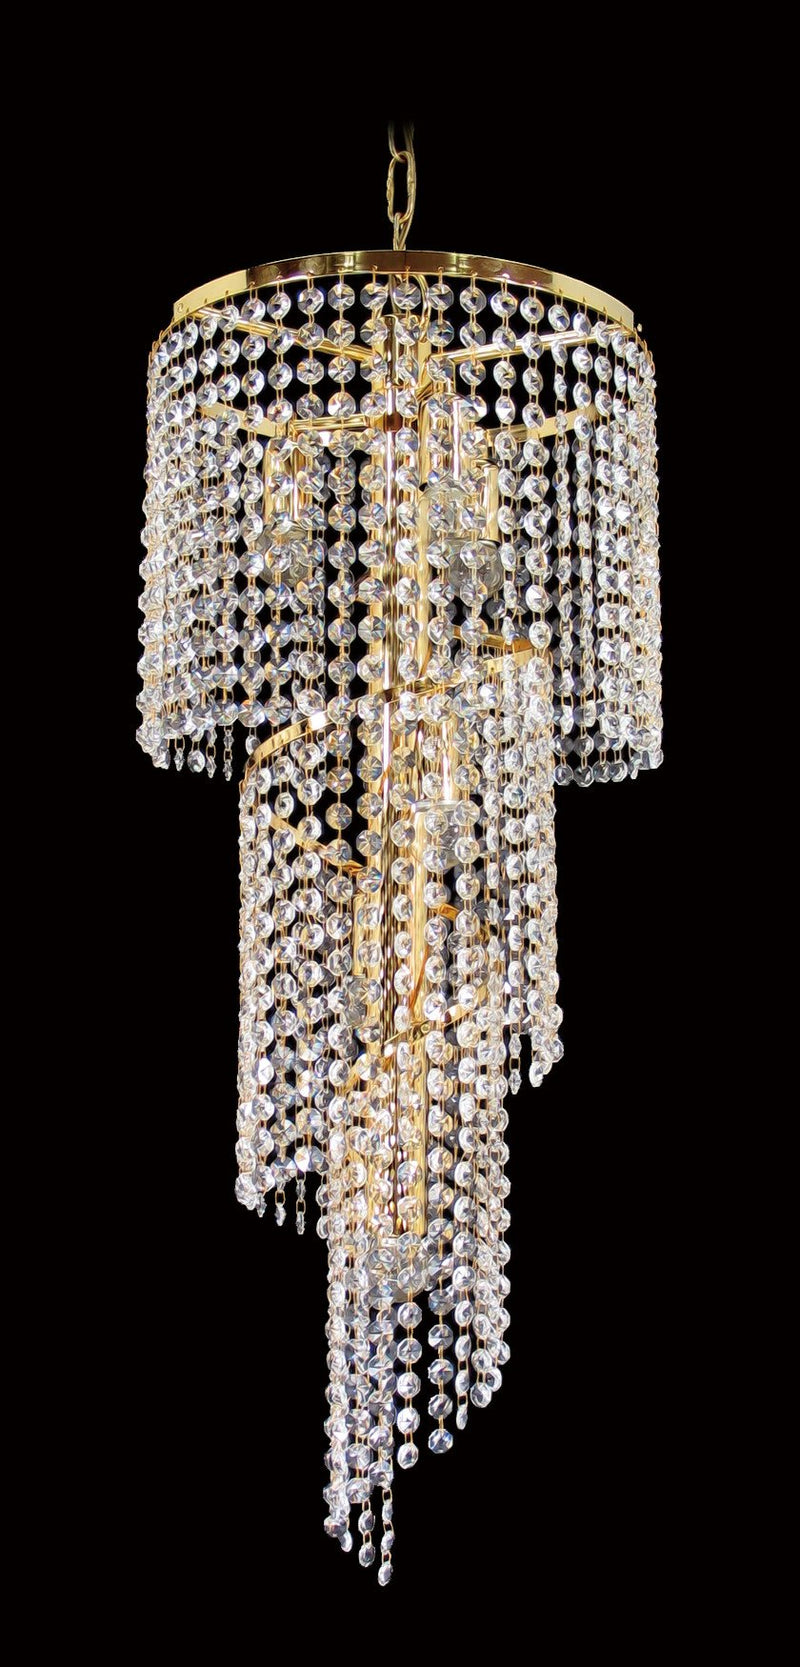 "701 Crystal Pendant Light 12"" 6 Light - Asfour Crystal 14mm Beads - Chandelier [701-12""-14mm]"